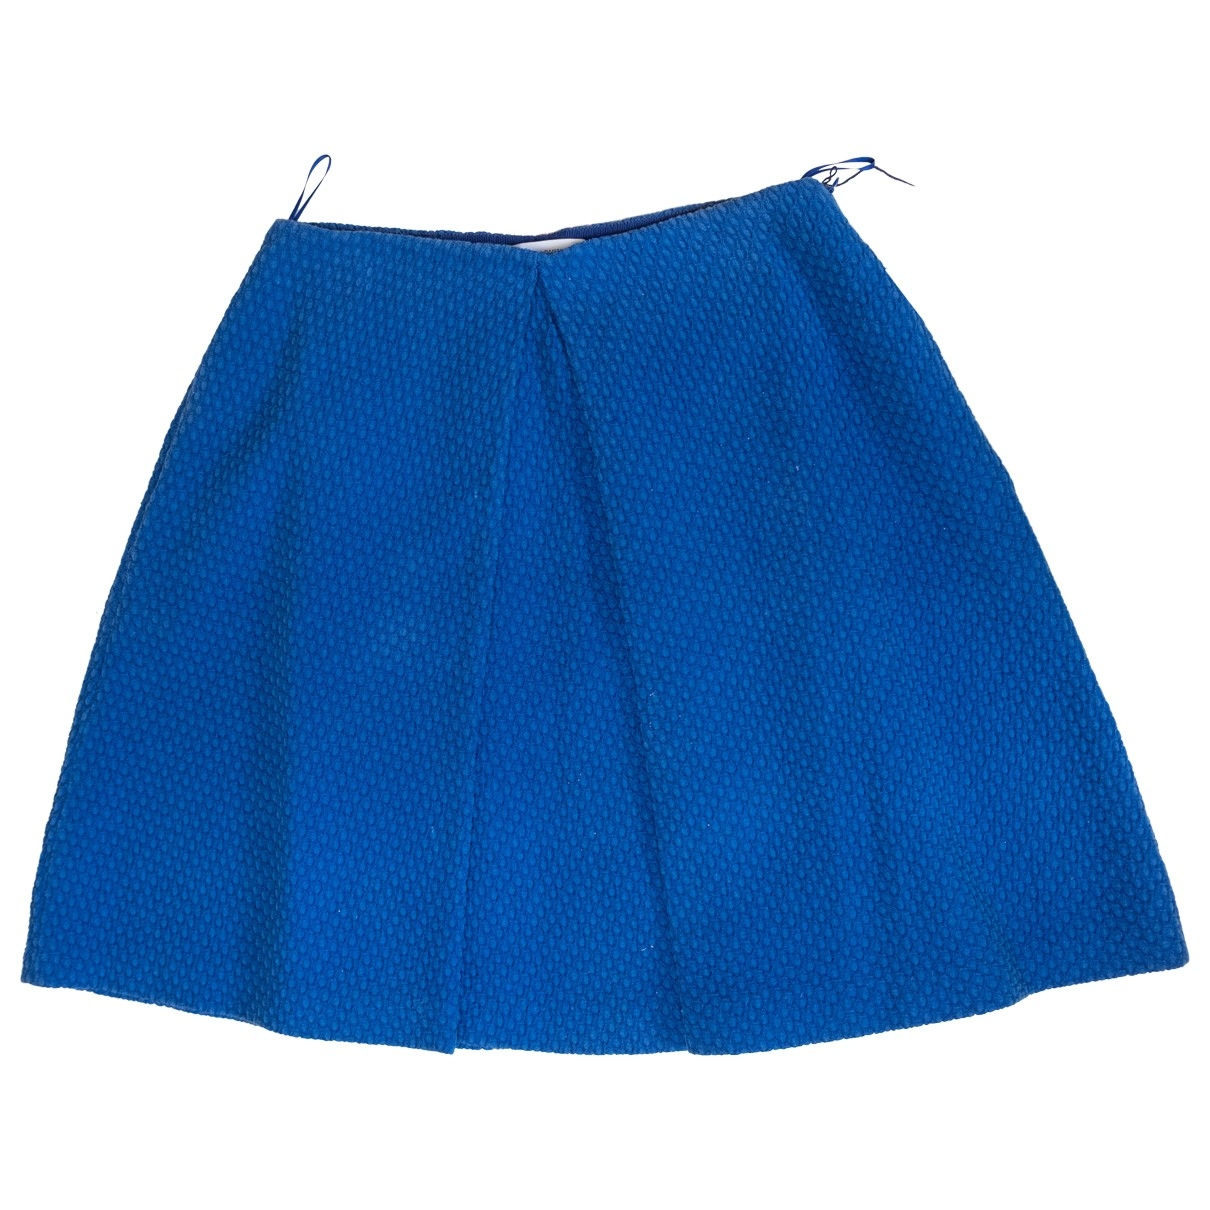 Moschino \N Blue Cotton skirt for Women 40 IT